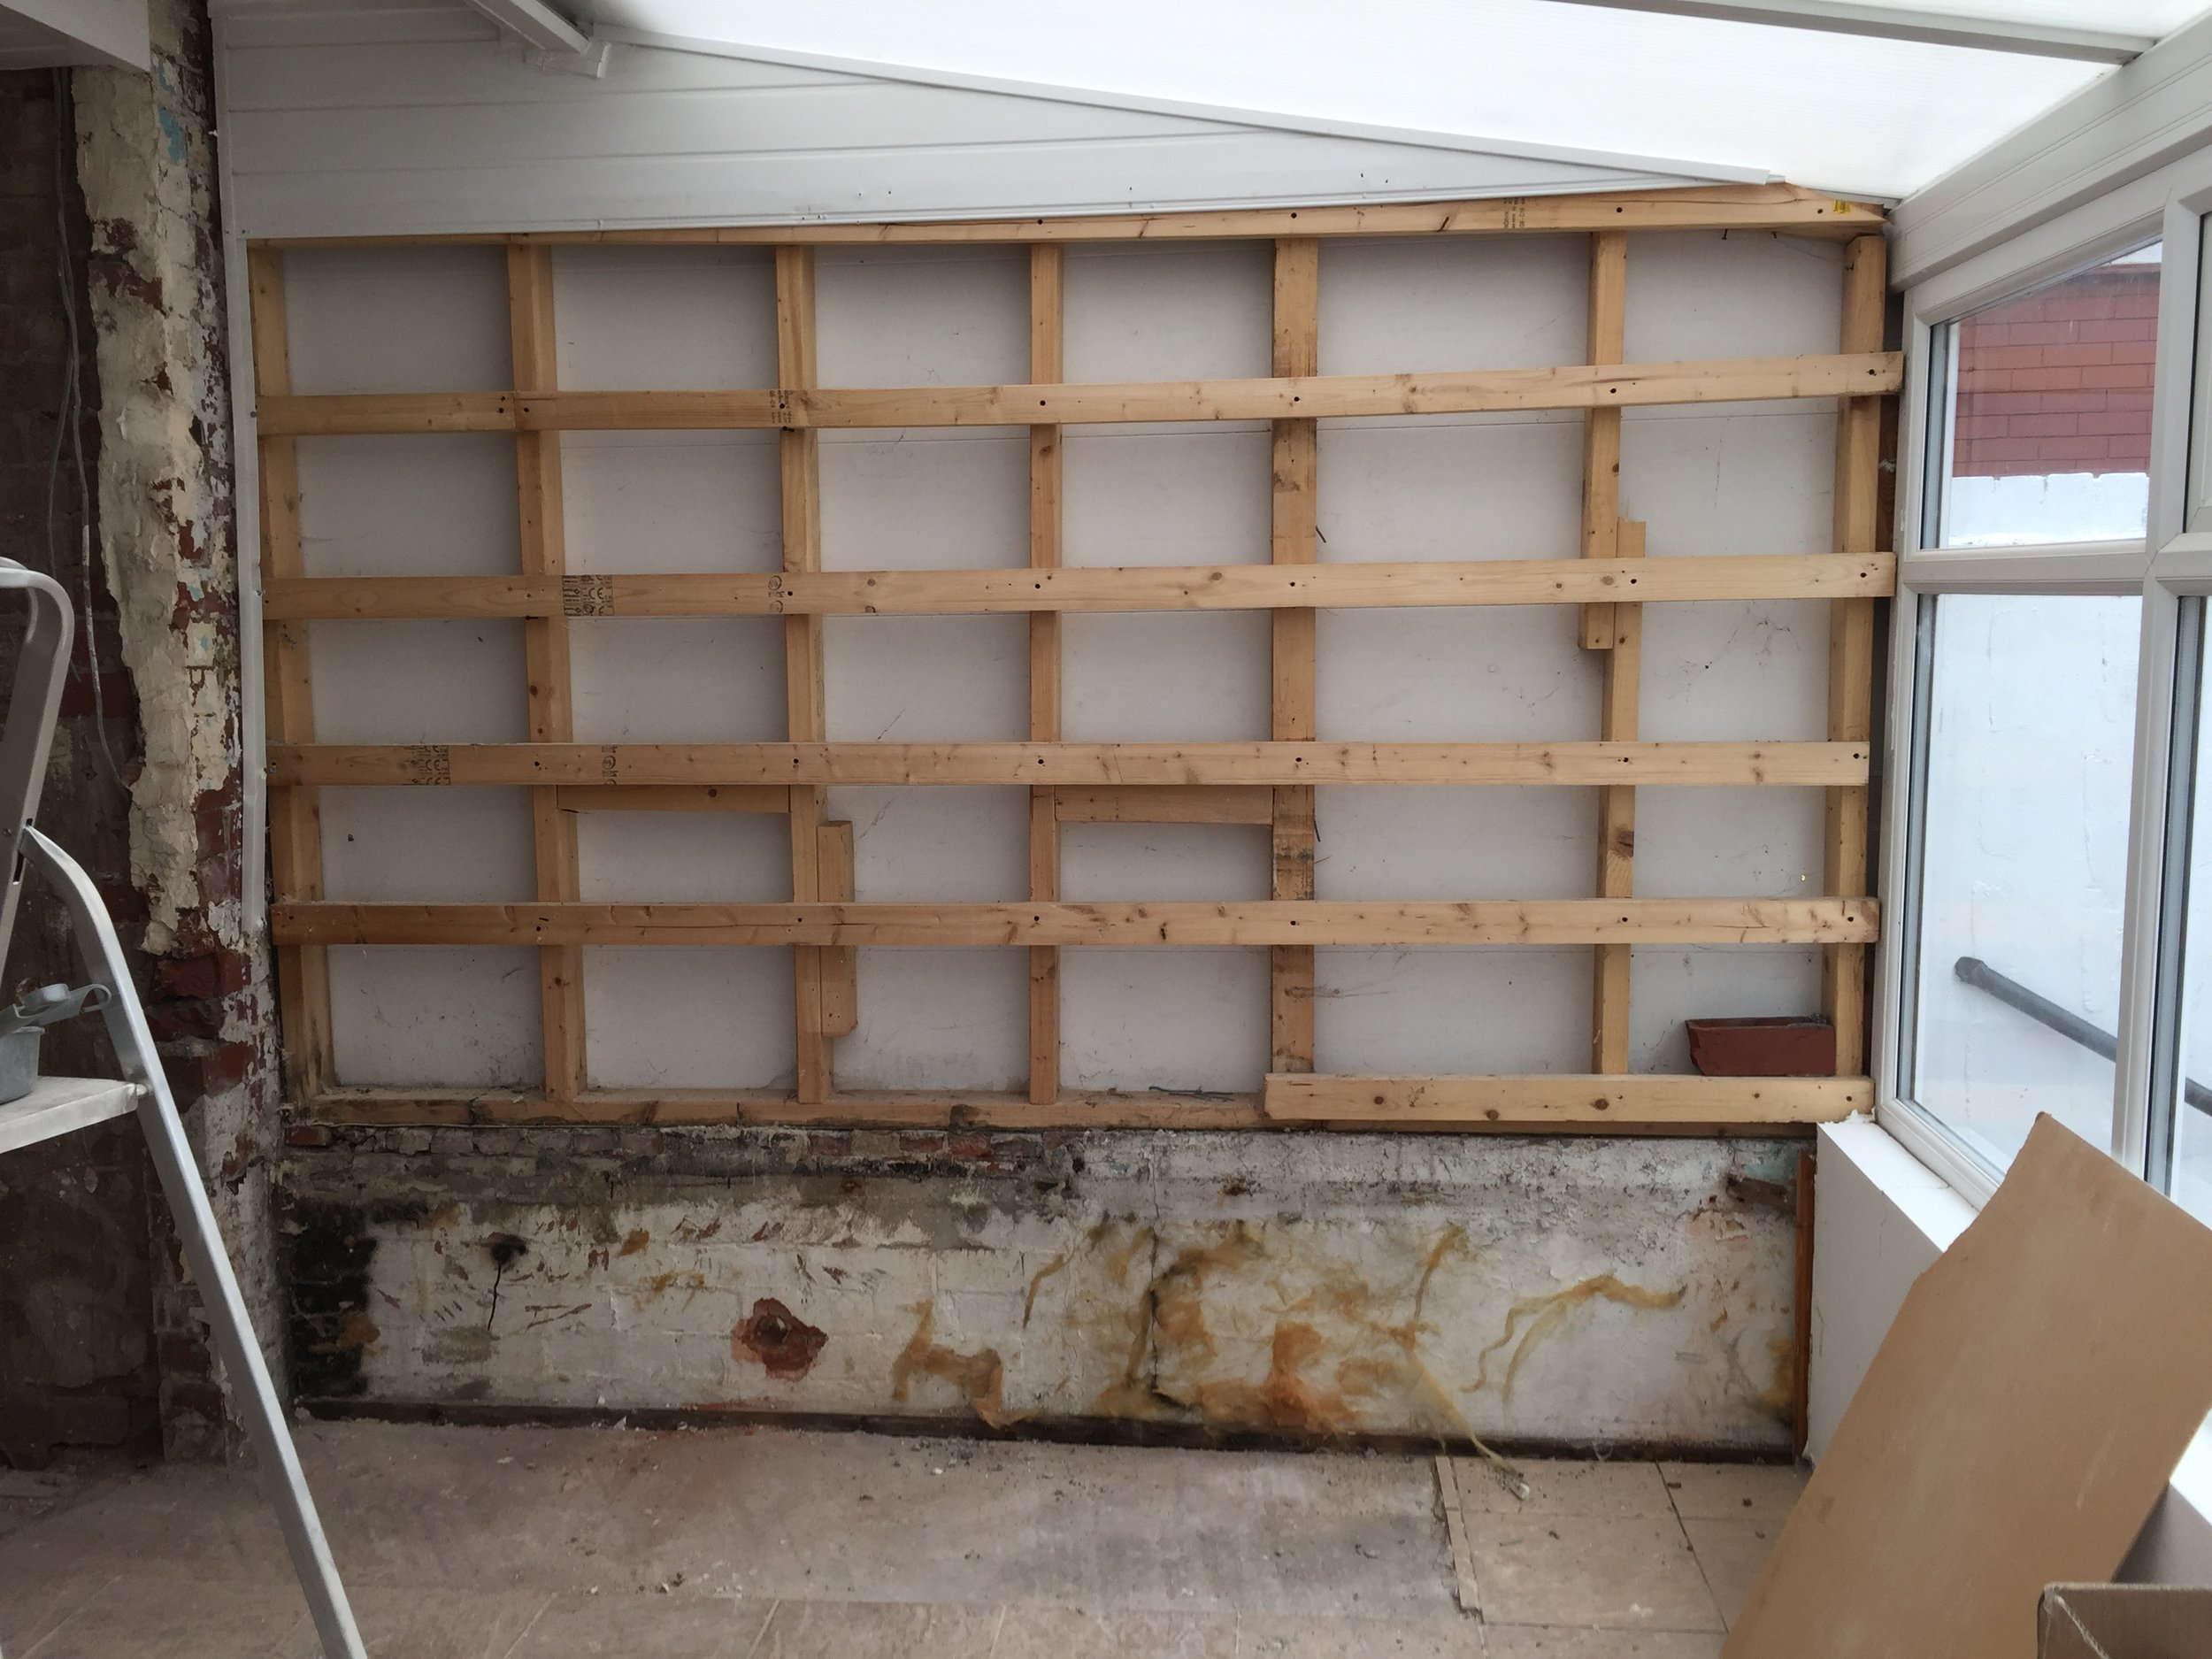 Plastic wall has now been restructured & insulated